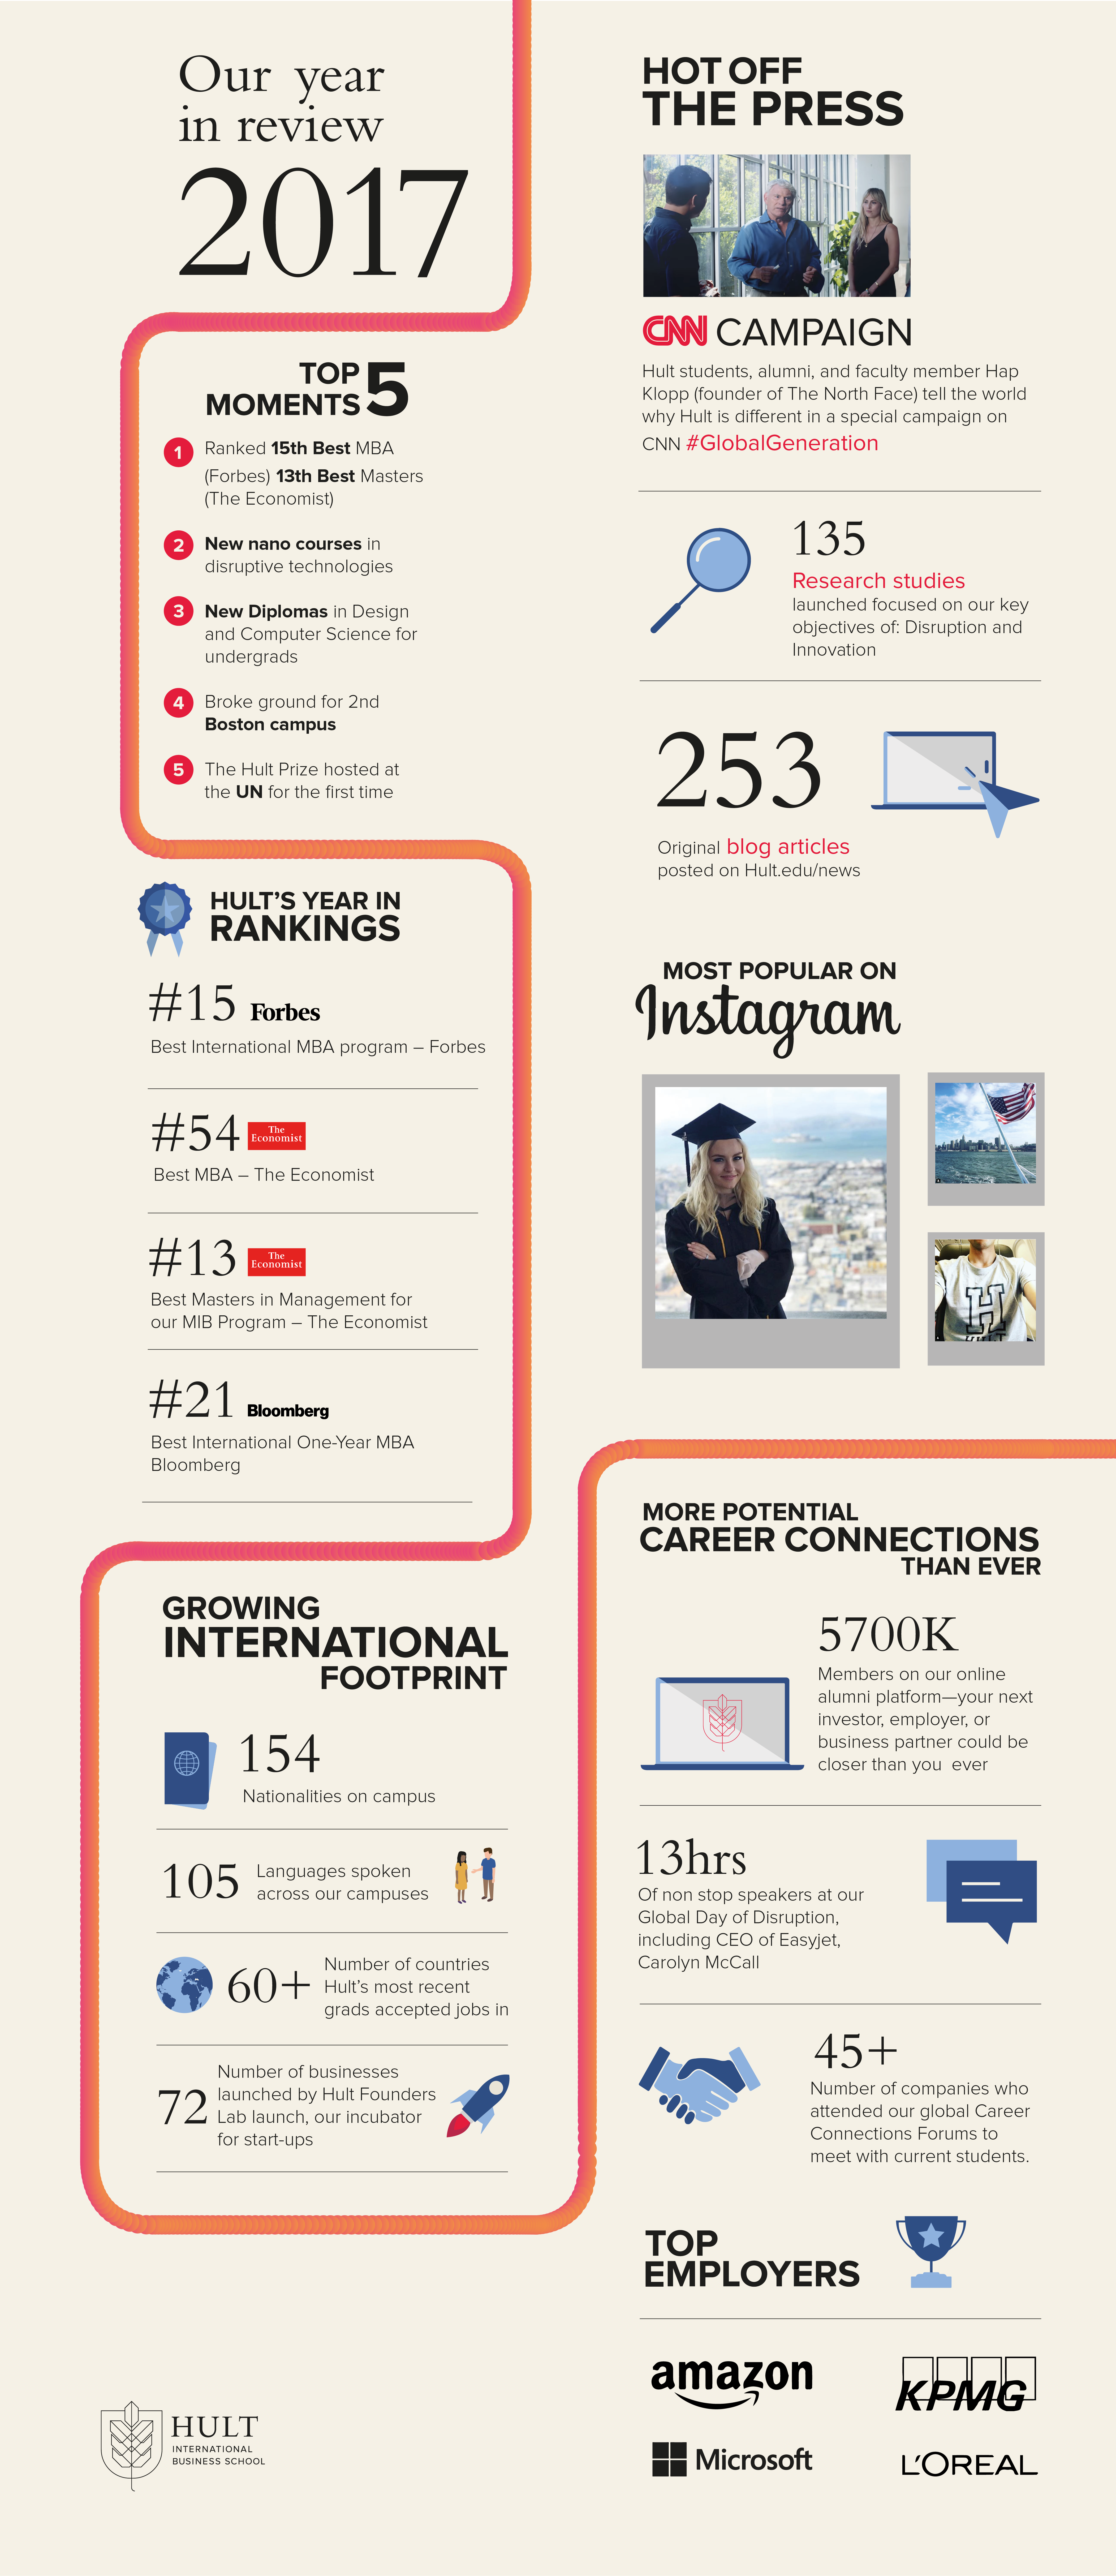 Hult 2017 in review